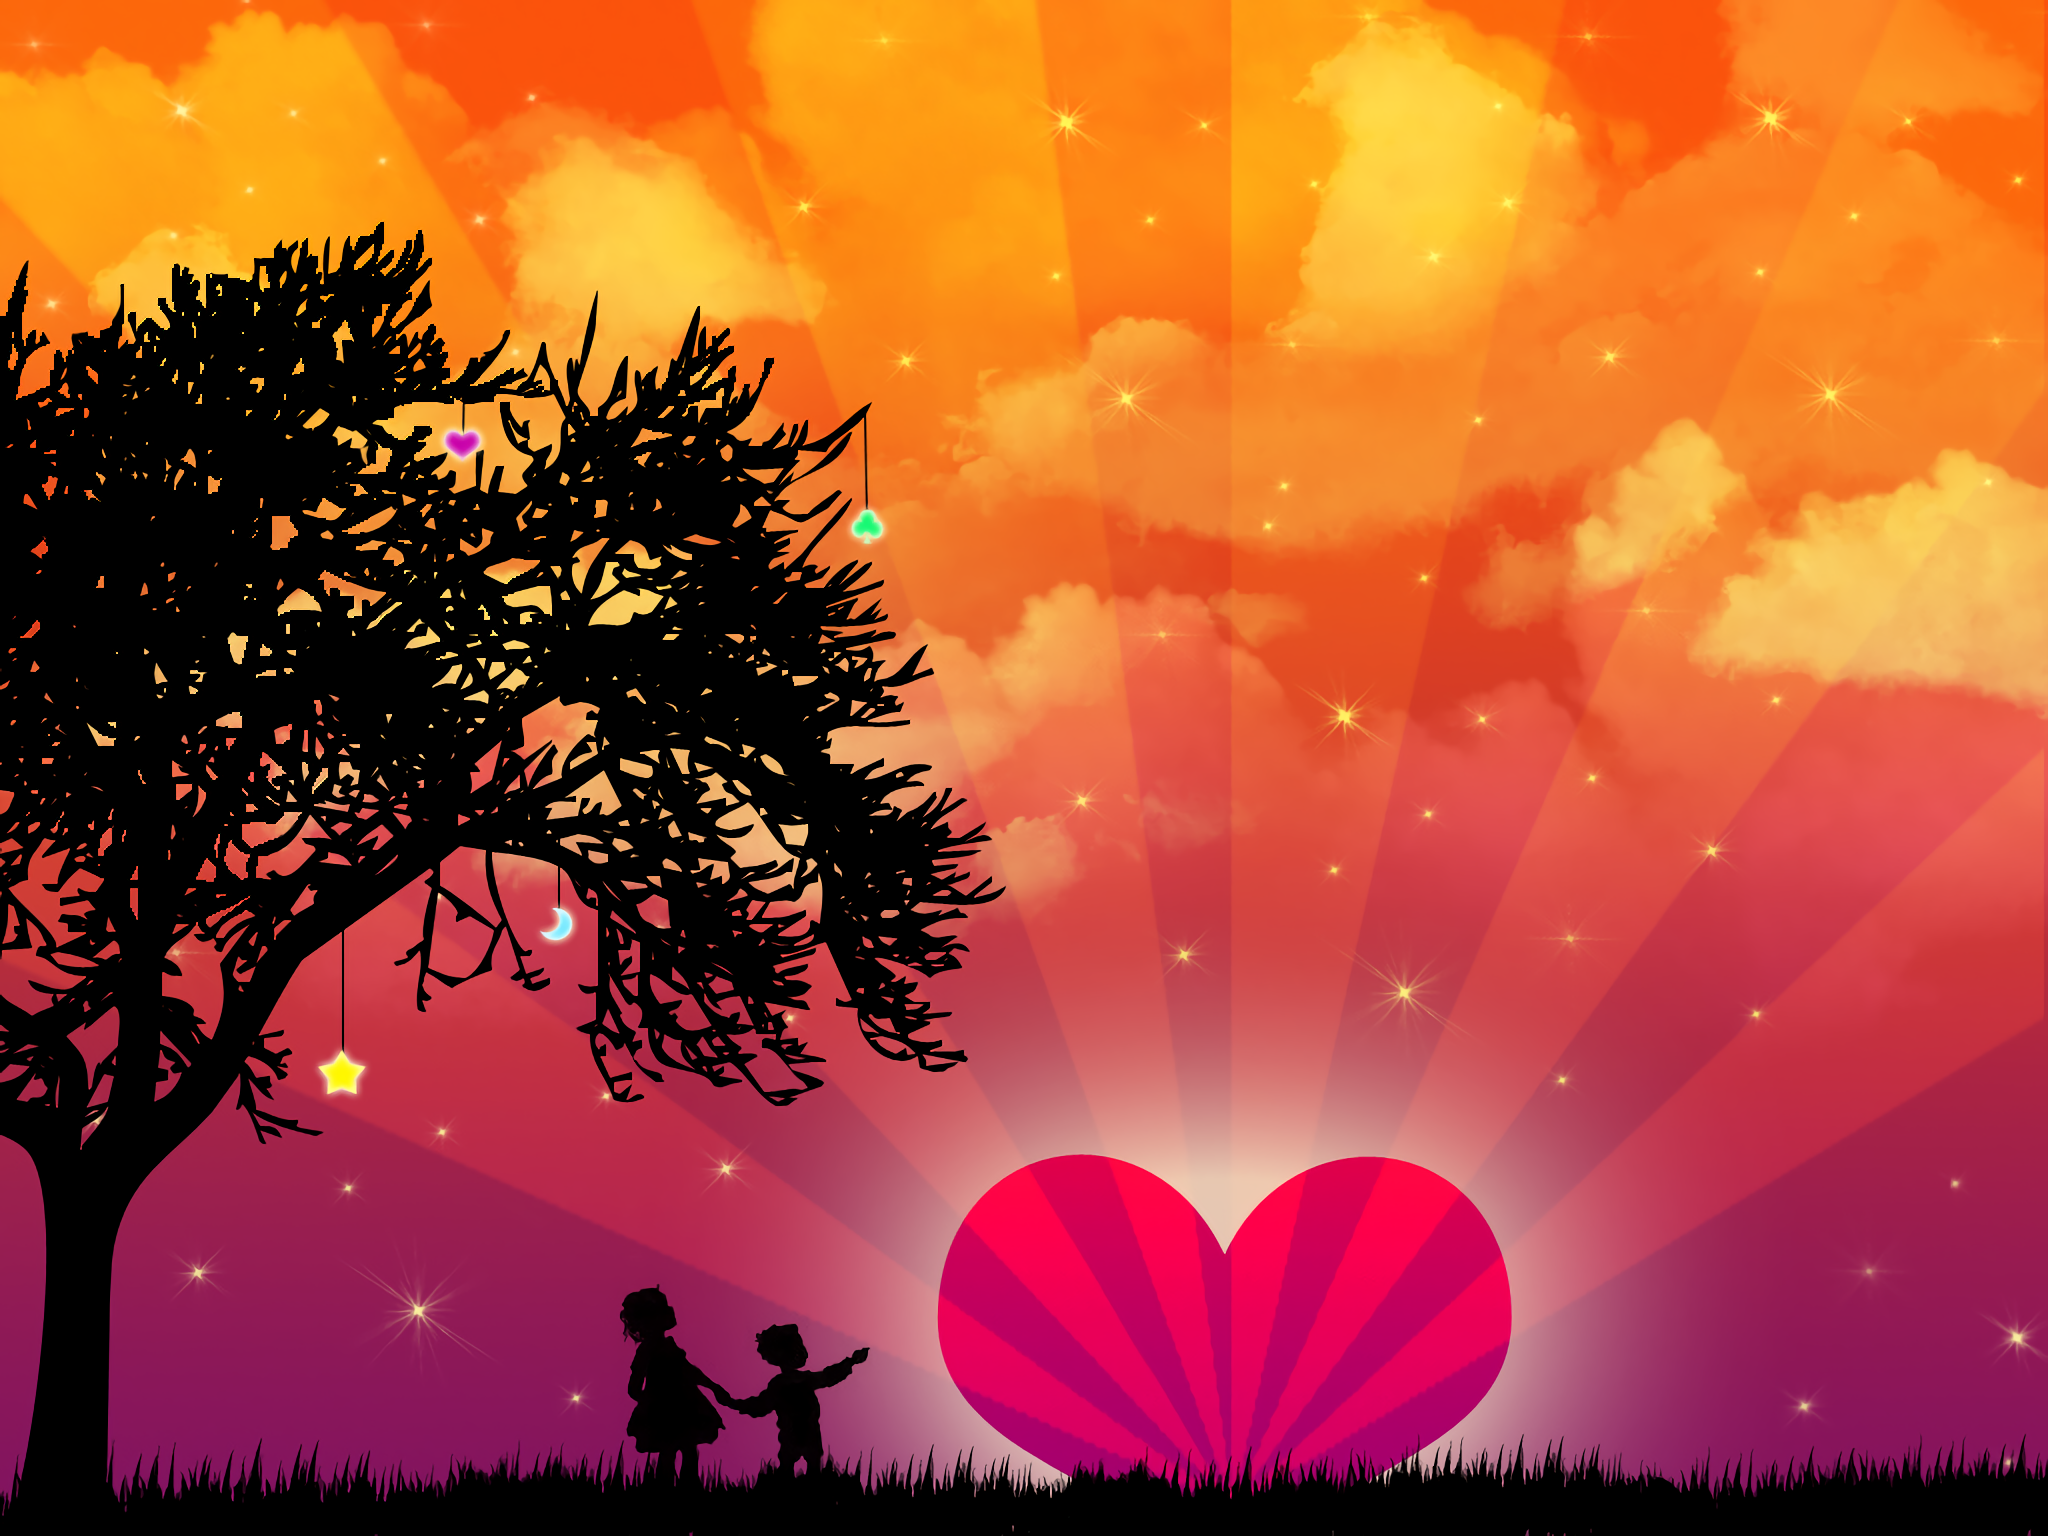 cute Love Wallpaper For Mobile : cute Love Wallpaper Full HD Download Desktop Mobile ...